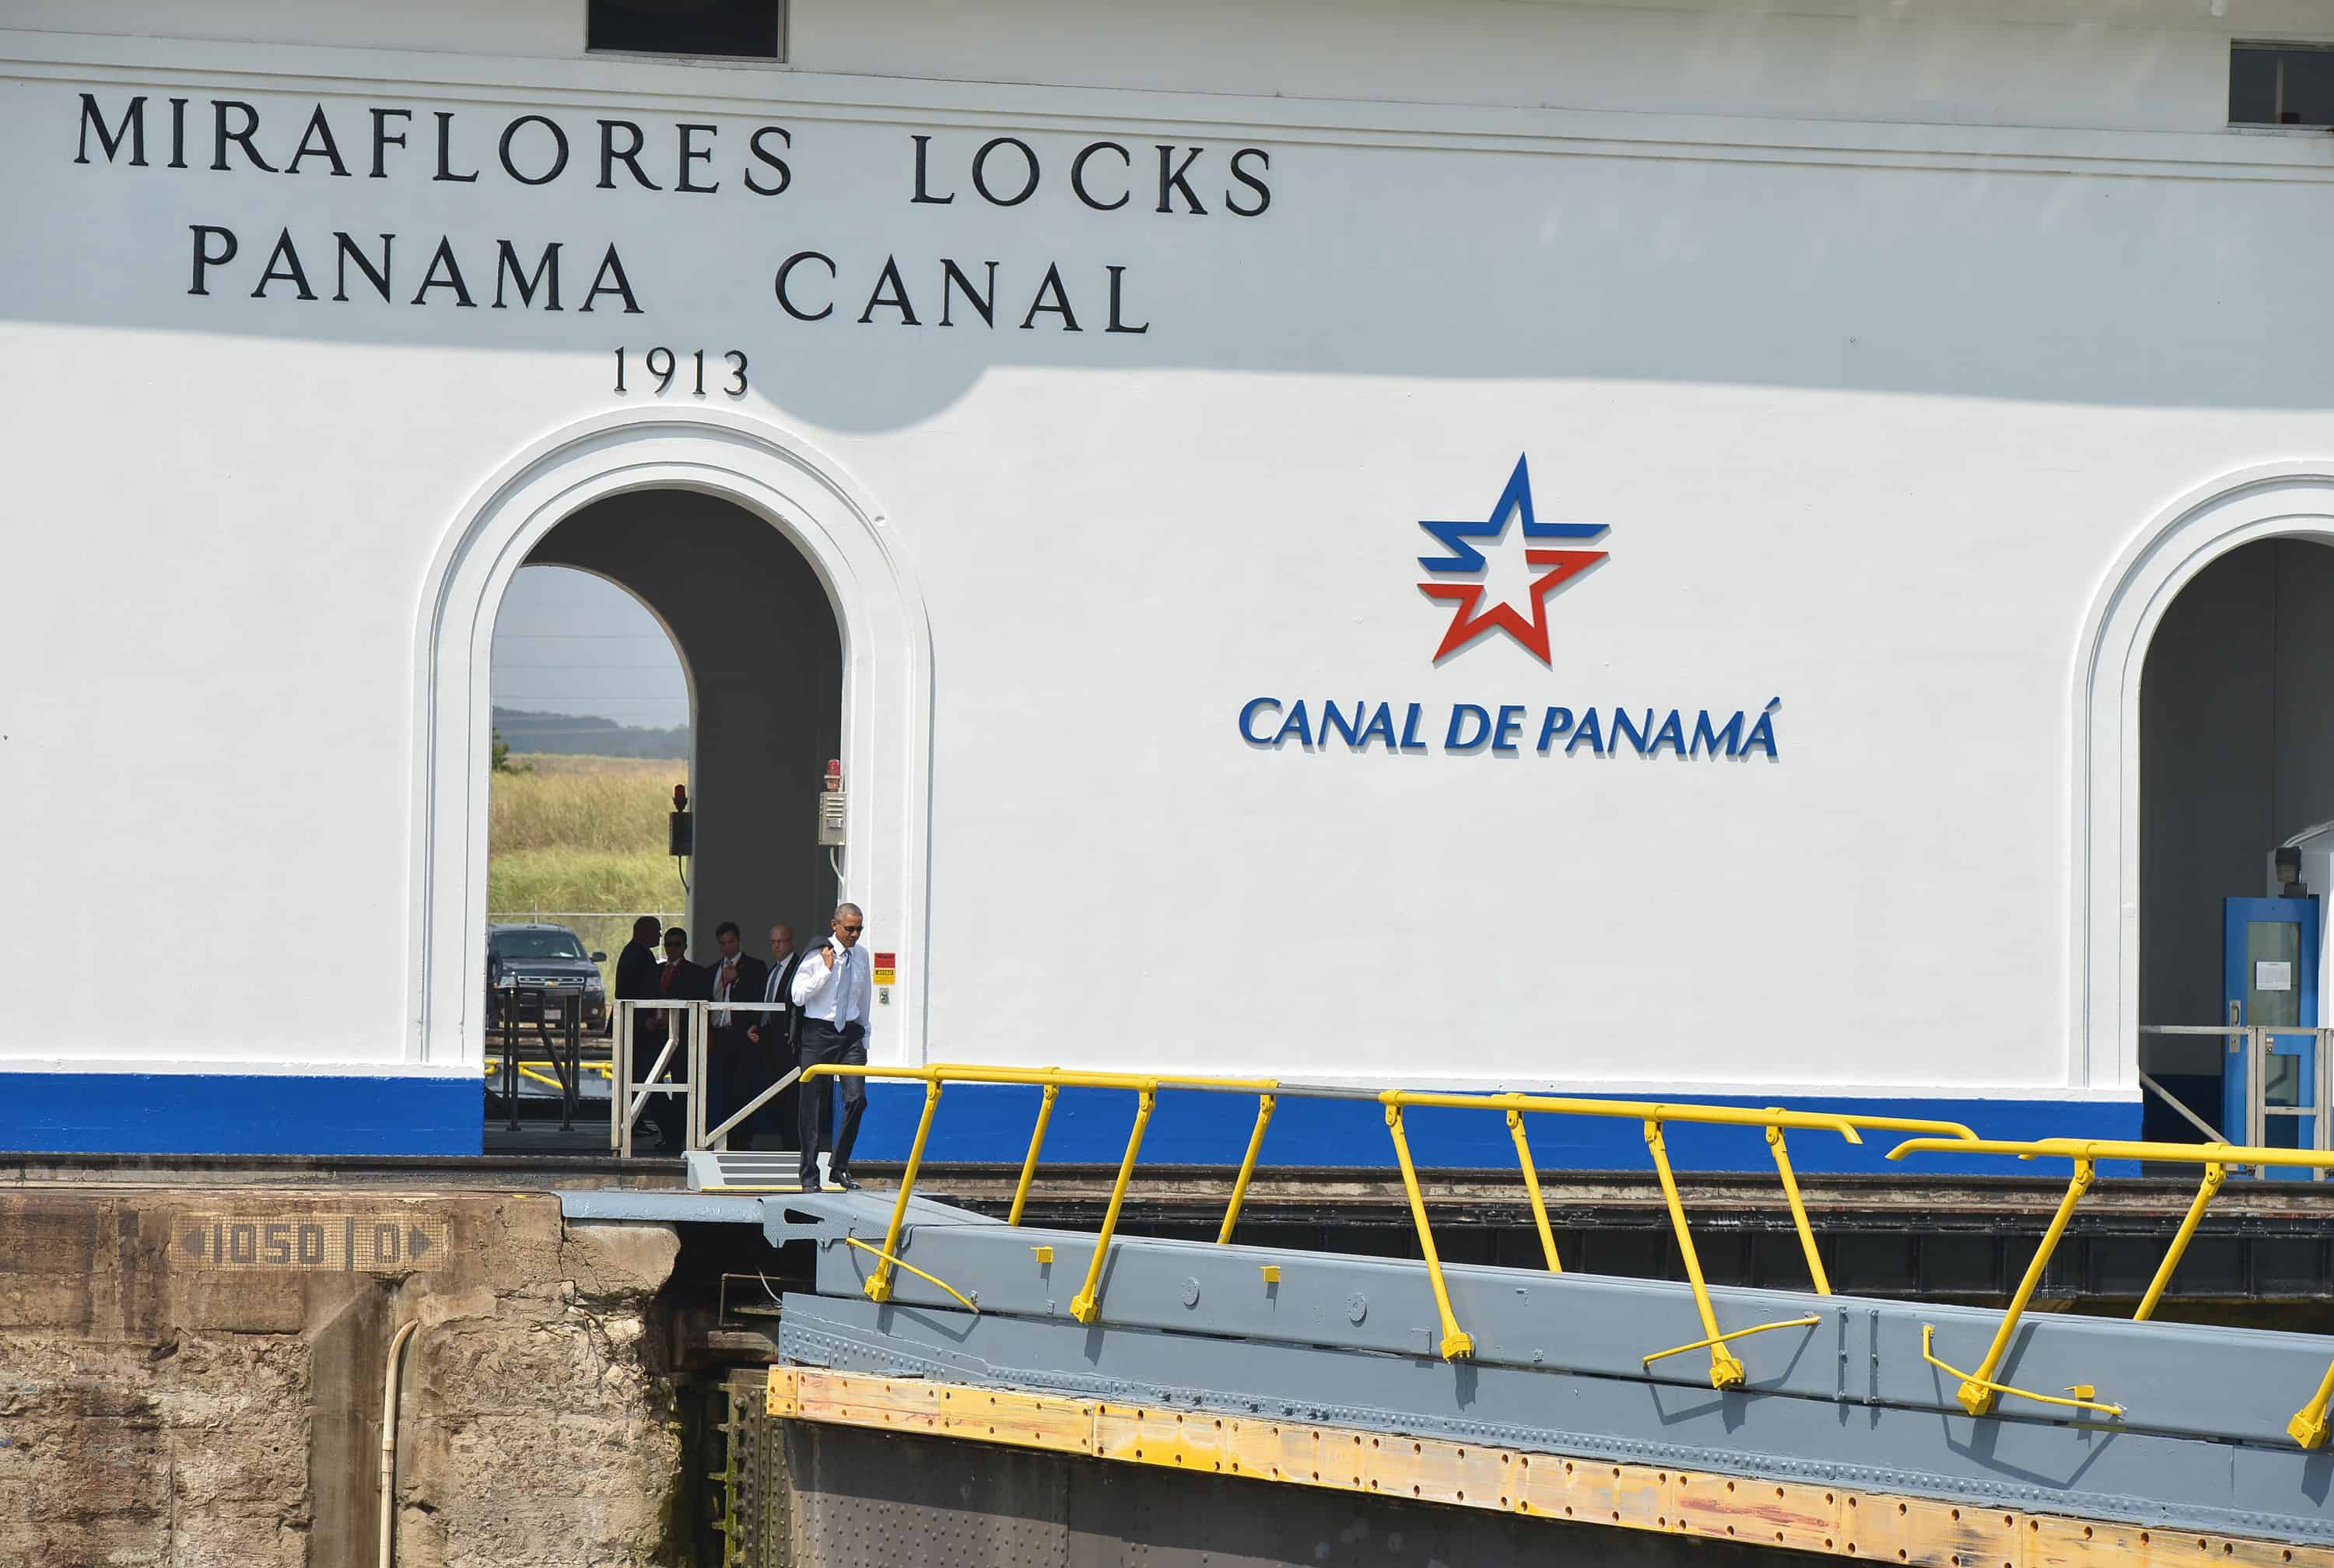 U.S. President Barack Obama tours the Miraflores section of the Panama Canal.